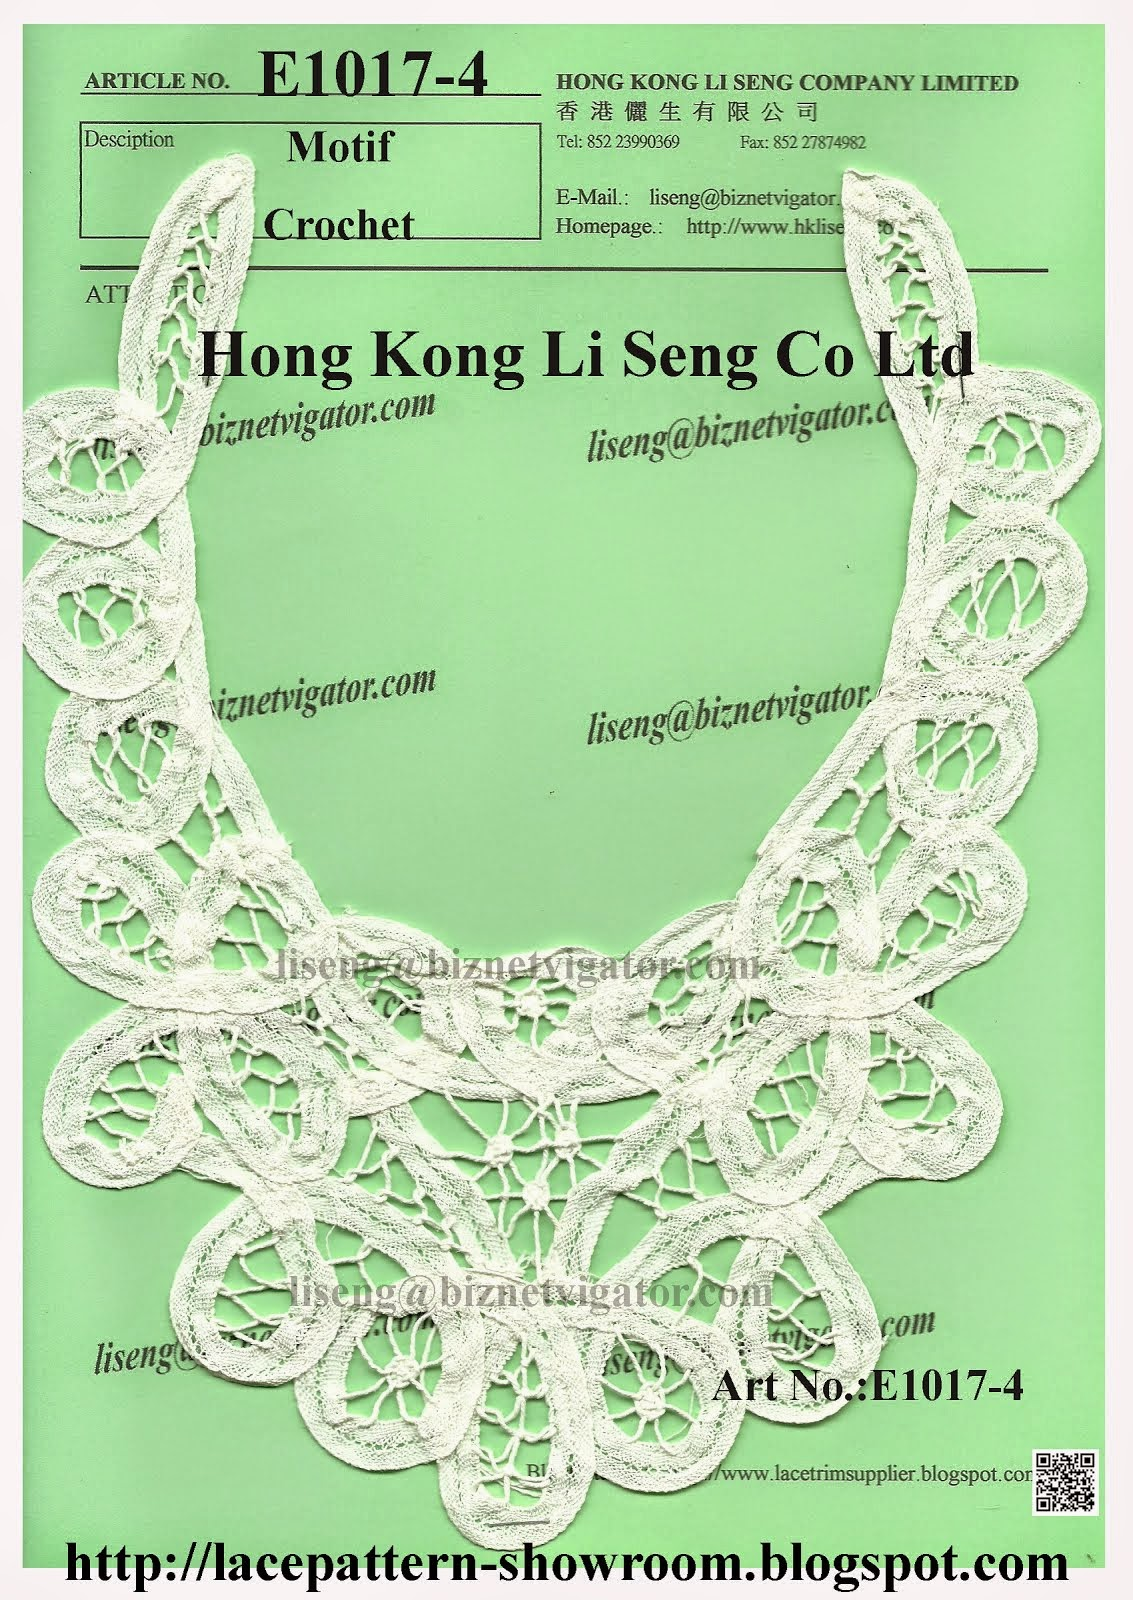 Chinese Handmade Crochet Motif and Applique Manufacturers Wholesalers - Hong Kong Li Seng Co Ltd